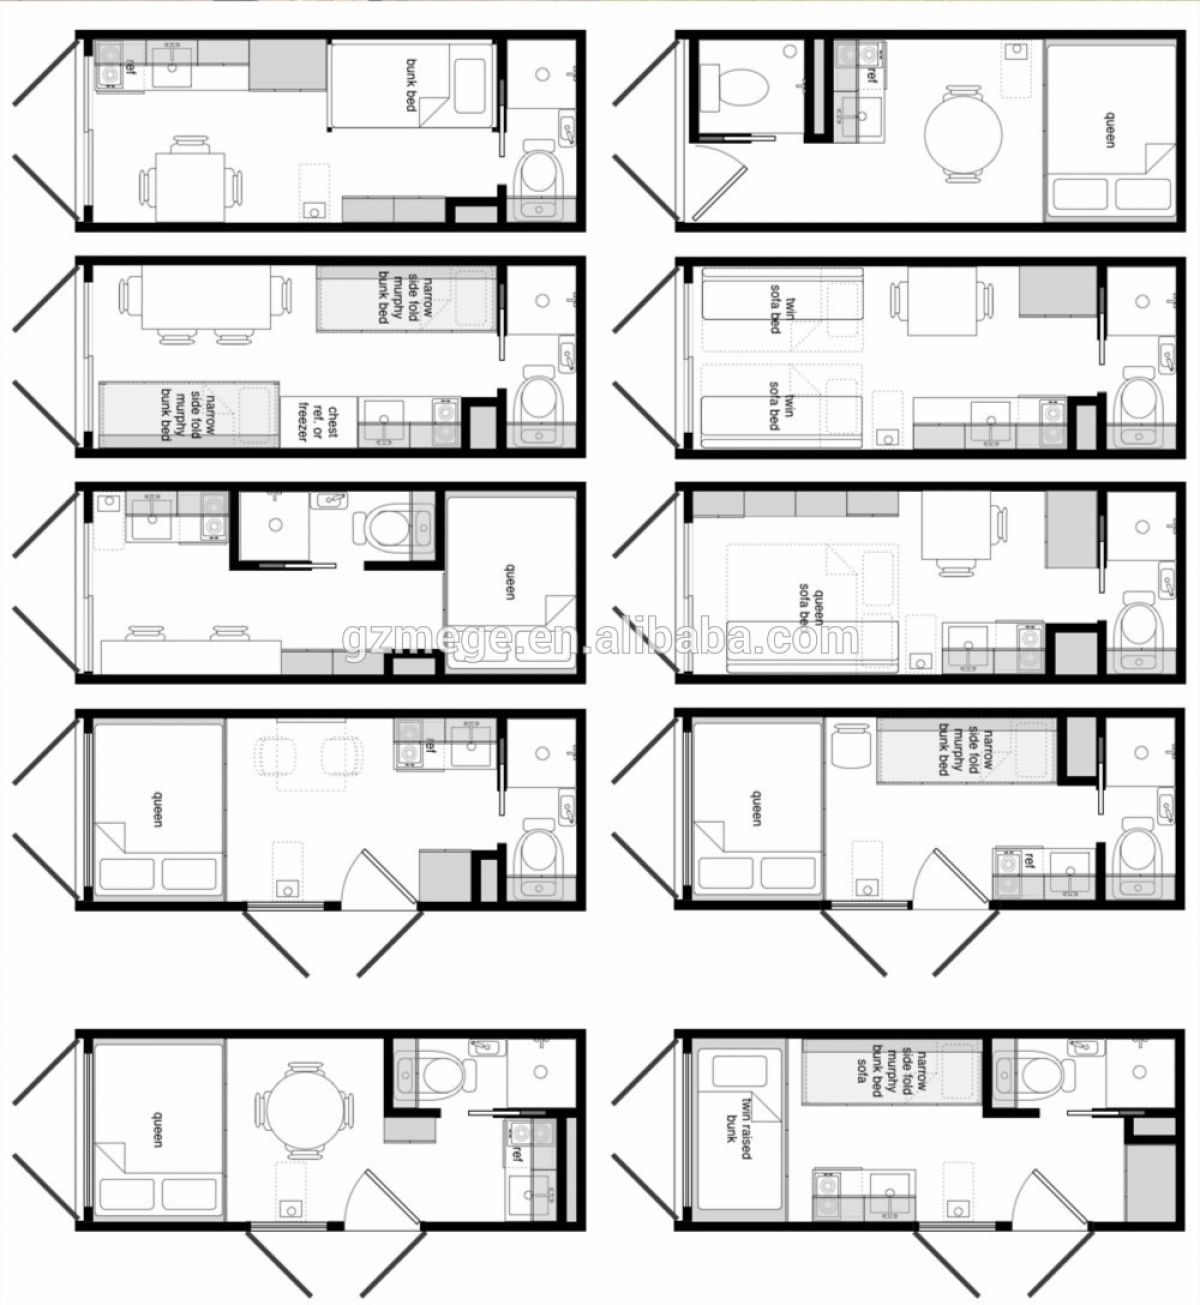 40 Foot Shipping Container House Layout